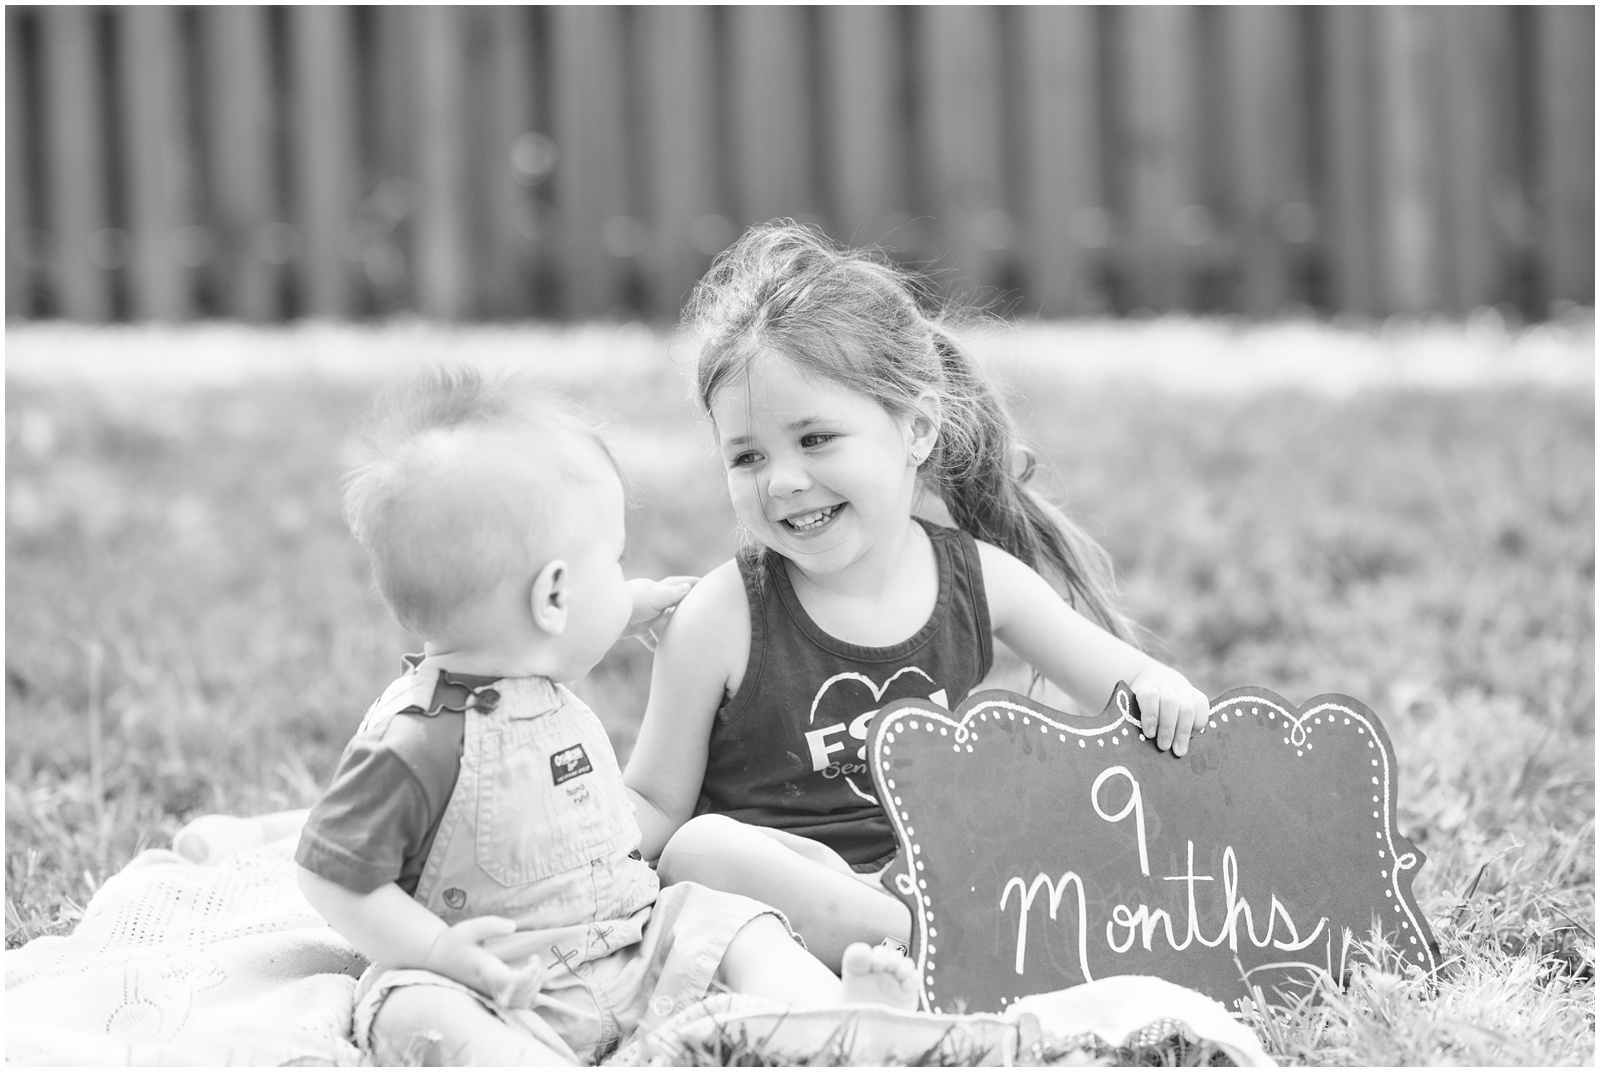 Baby_Portraits_9 Months_Family_Siblings_Growing Up_5.jpg